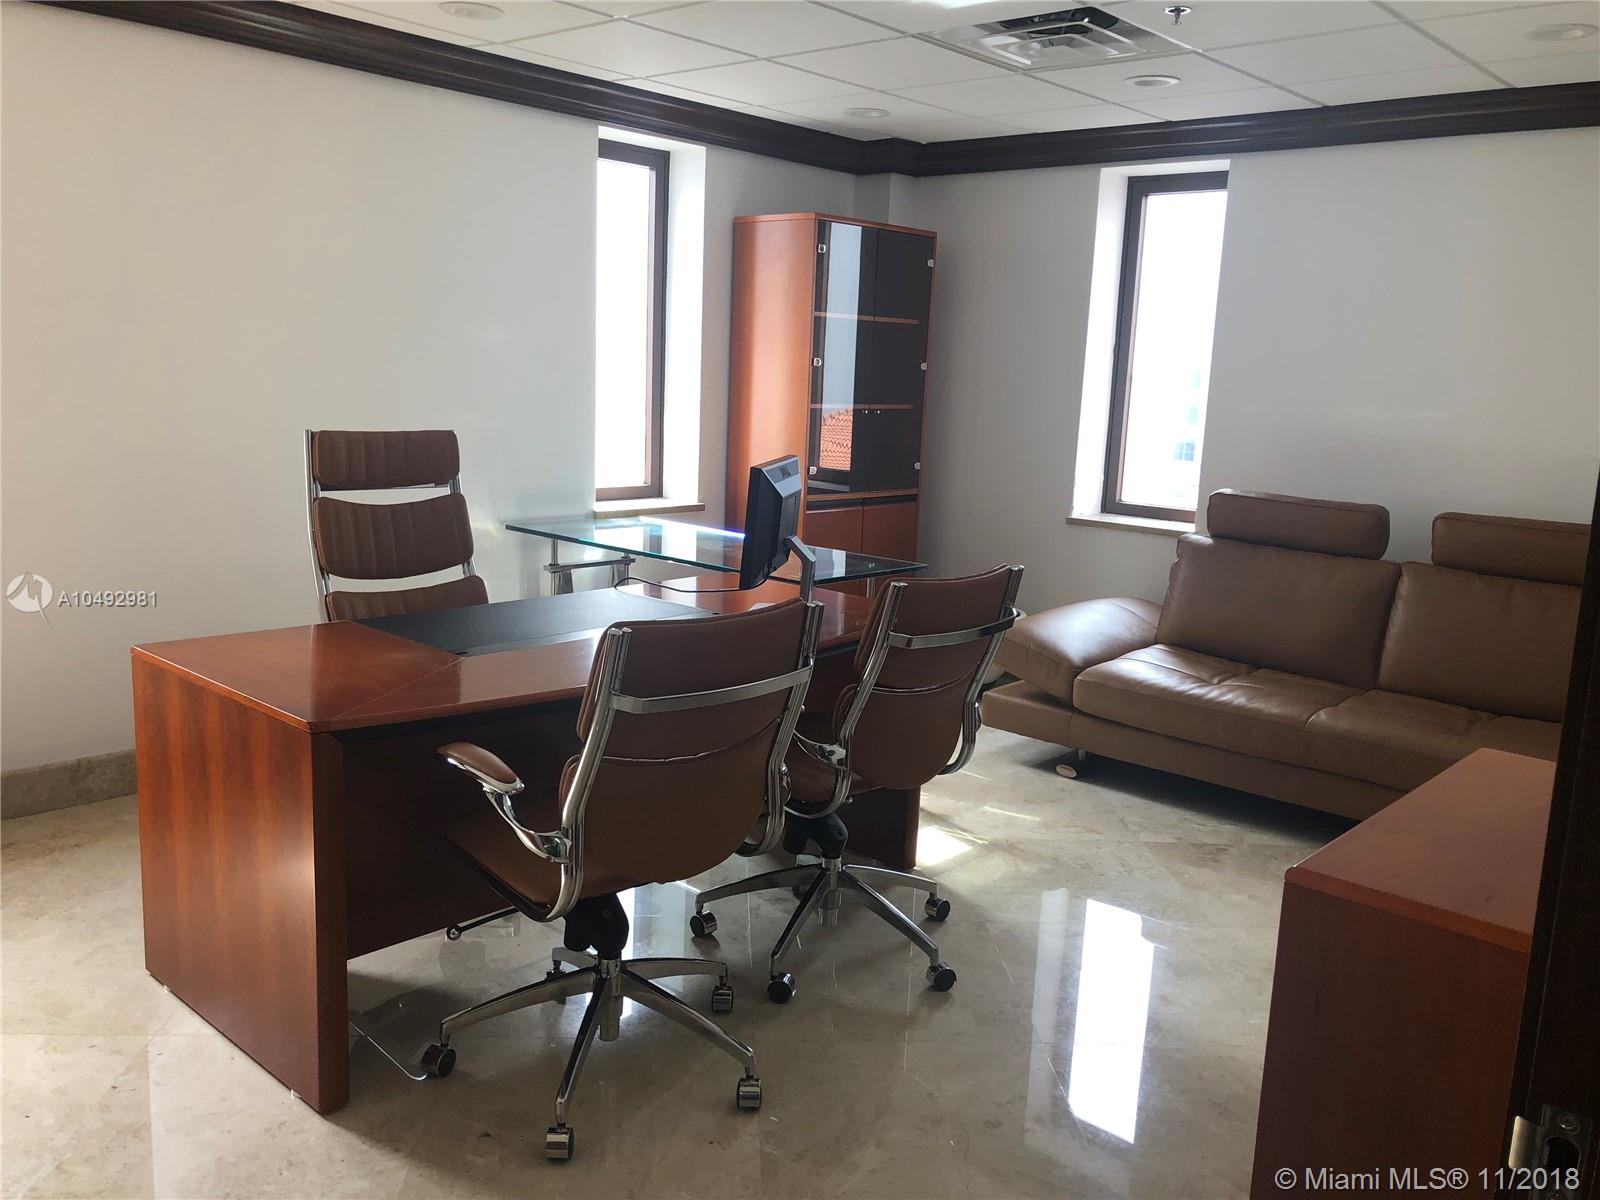 111 NE 1 Street # 514, Miami, Florida 33132, ,Commercial Sale,For Sale,111 NE 1 Street # 514,A10492981